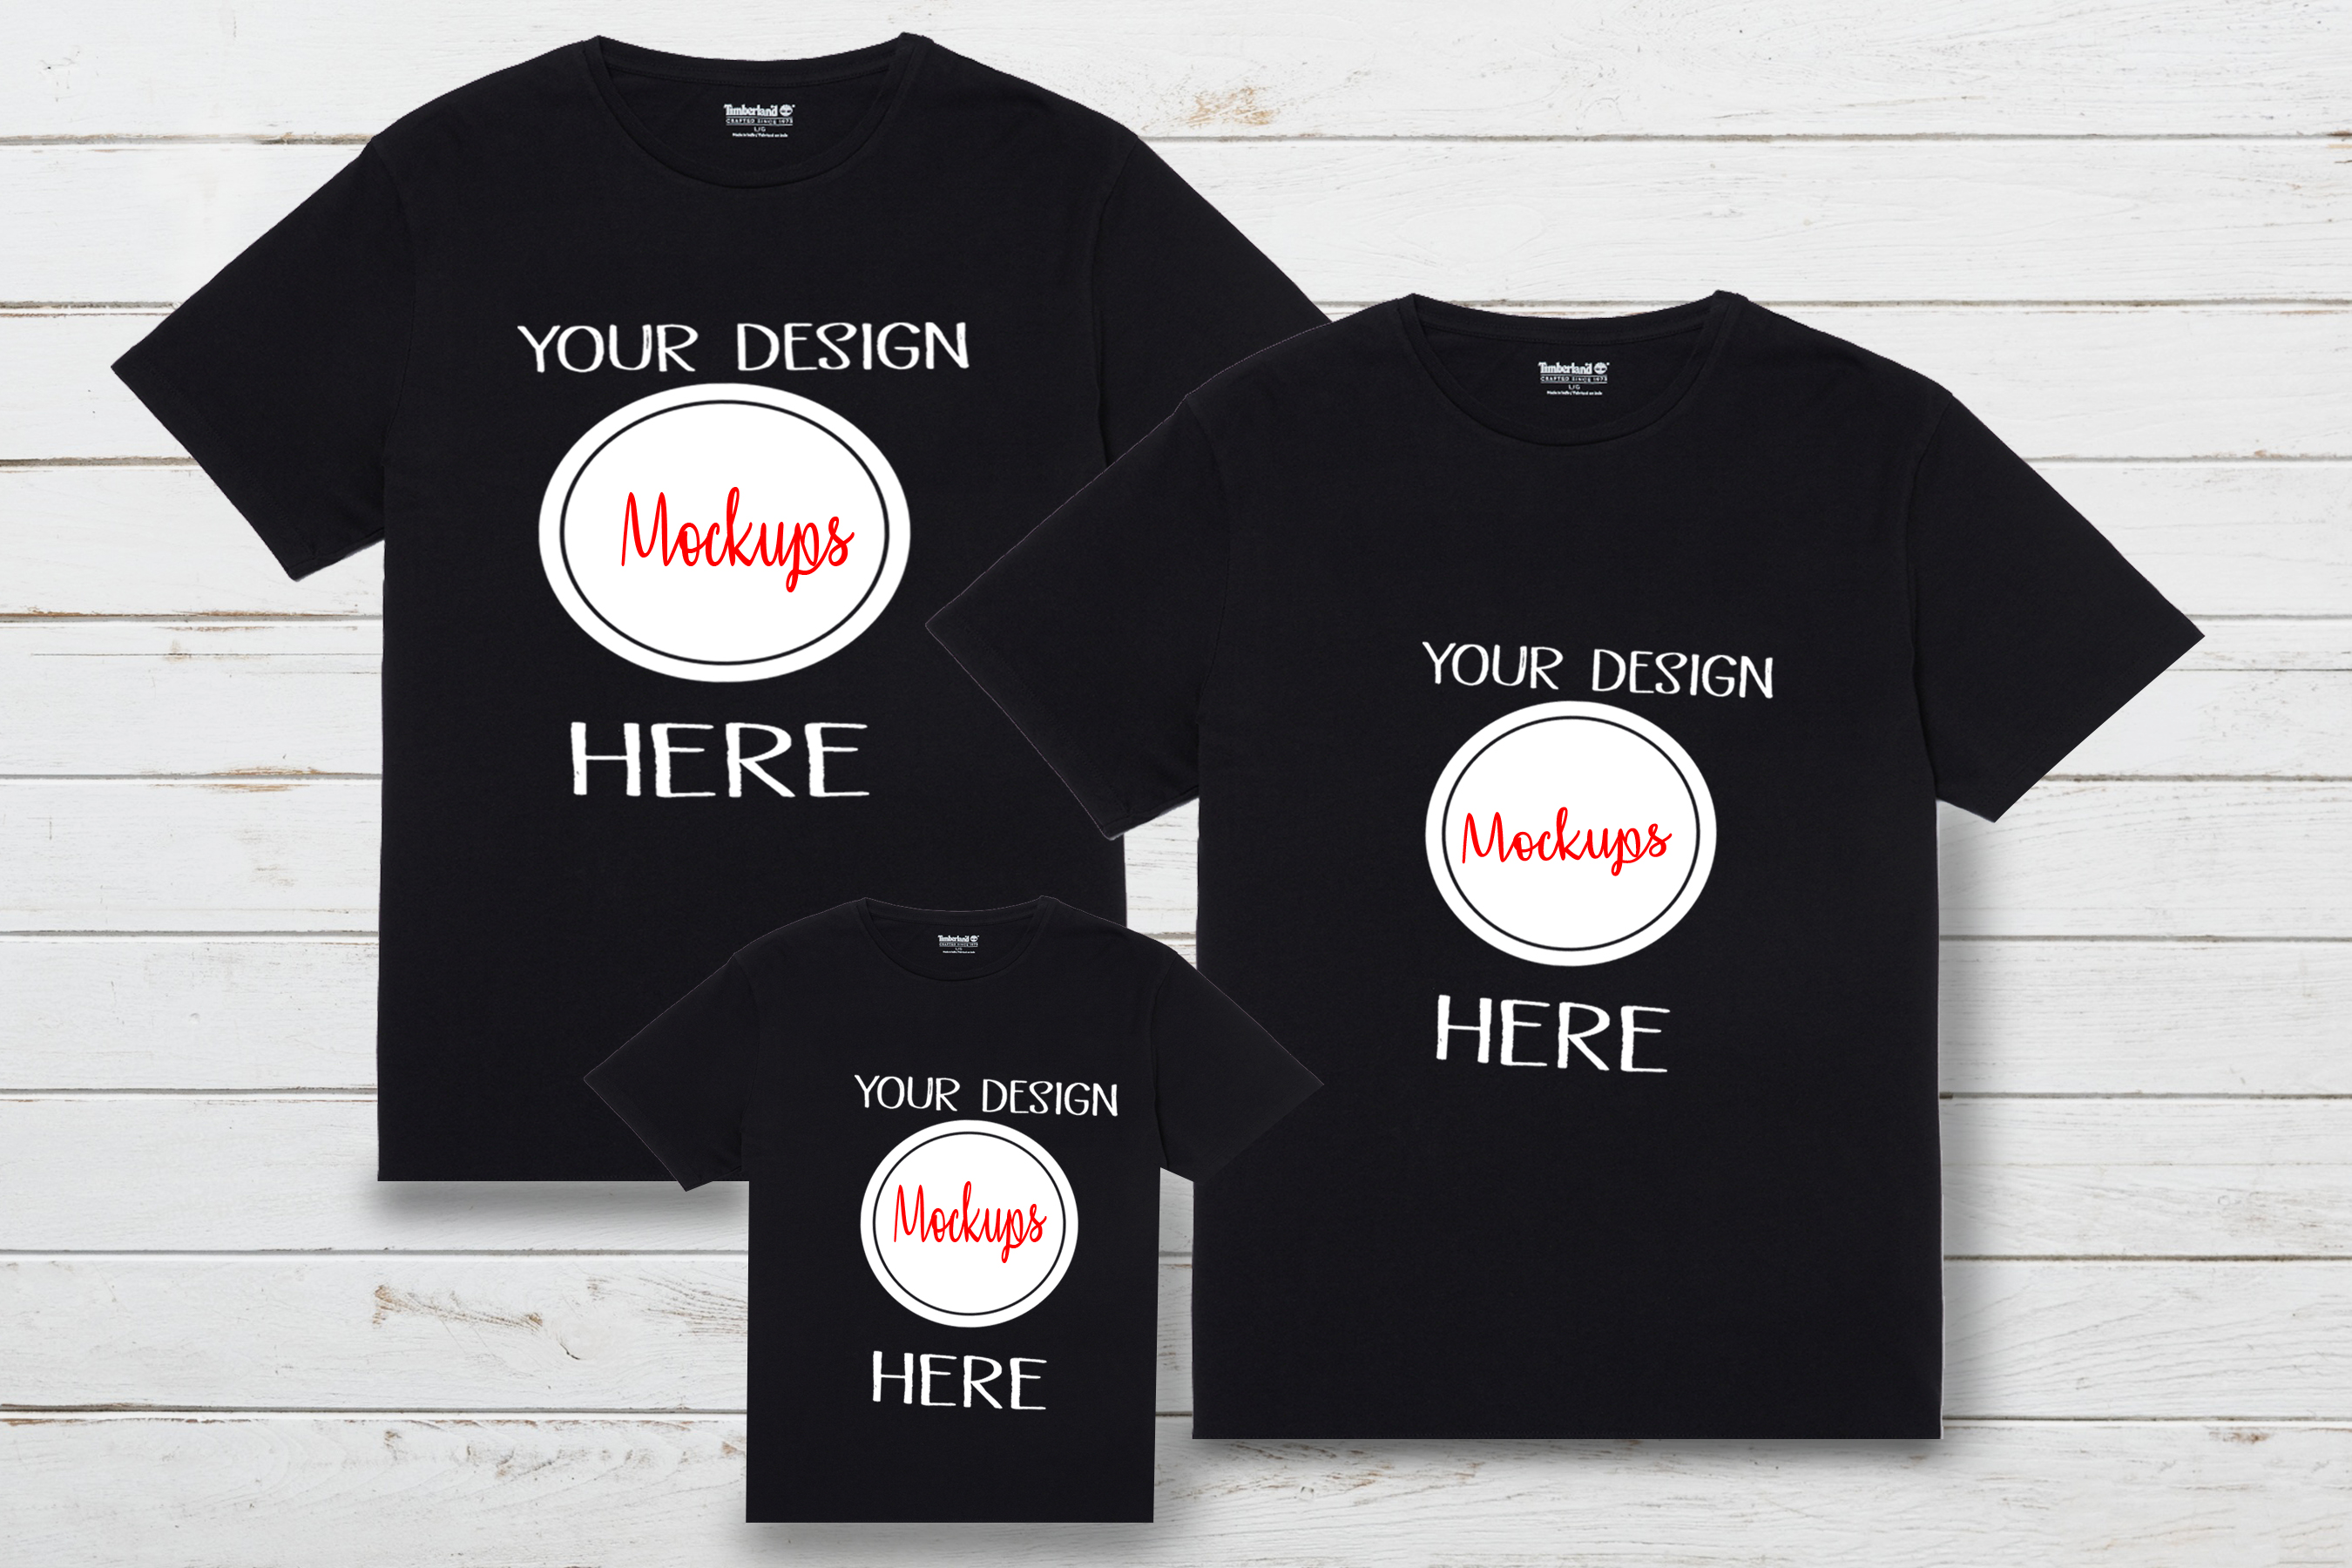 Download Free Family Shirt Mockups Shirt Mockup Mockup Graphic By Scmdesign for Cricut Explore, Silhouette and other cutting machines.